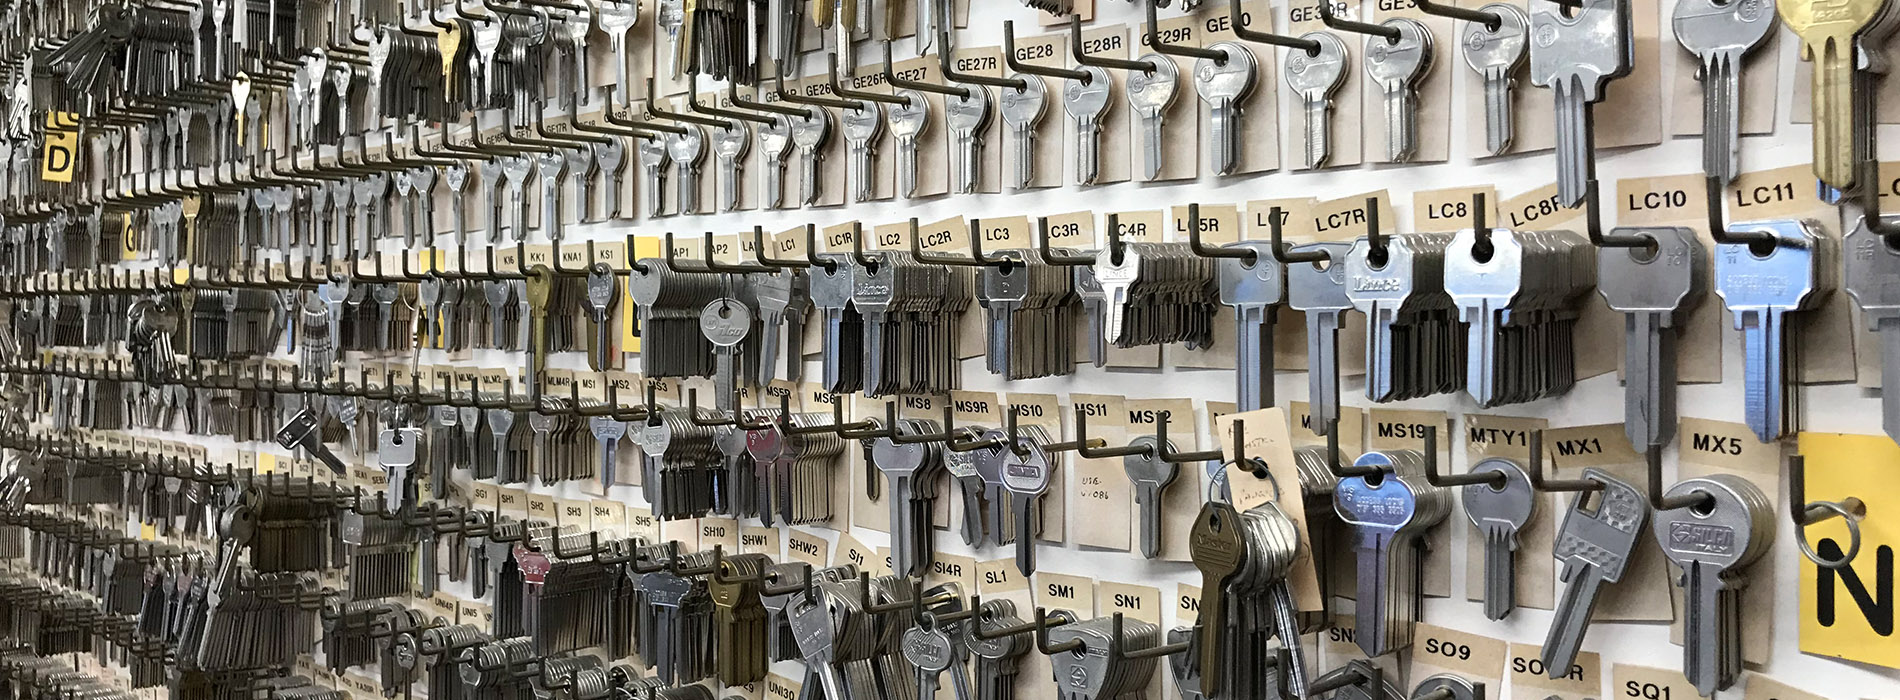 Access Locks Locksmiths - all types of keys cut